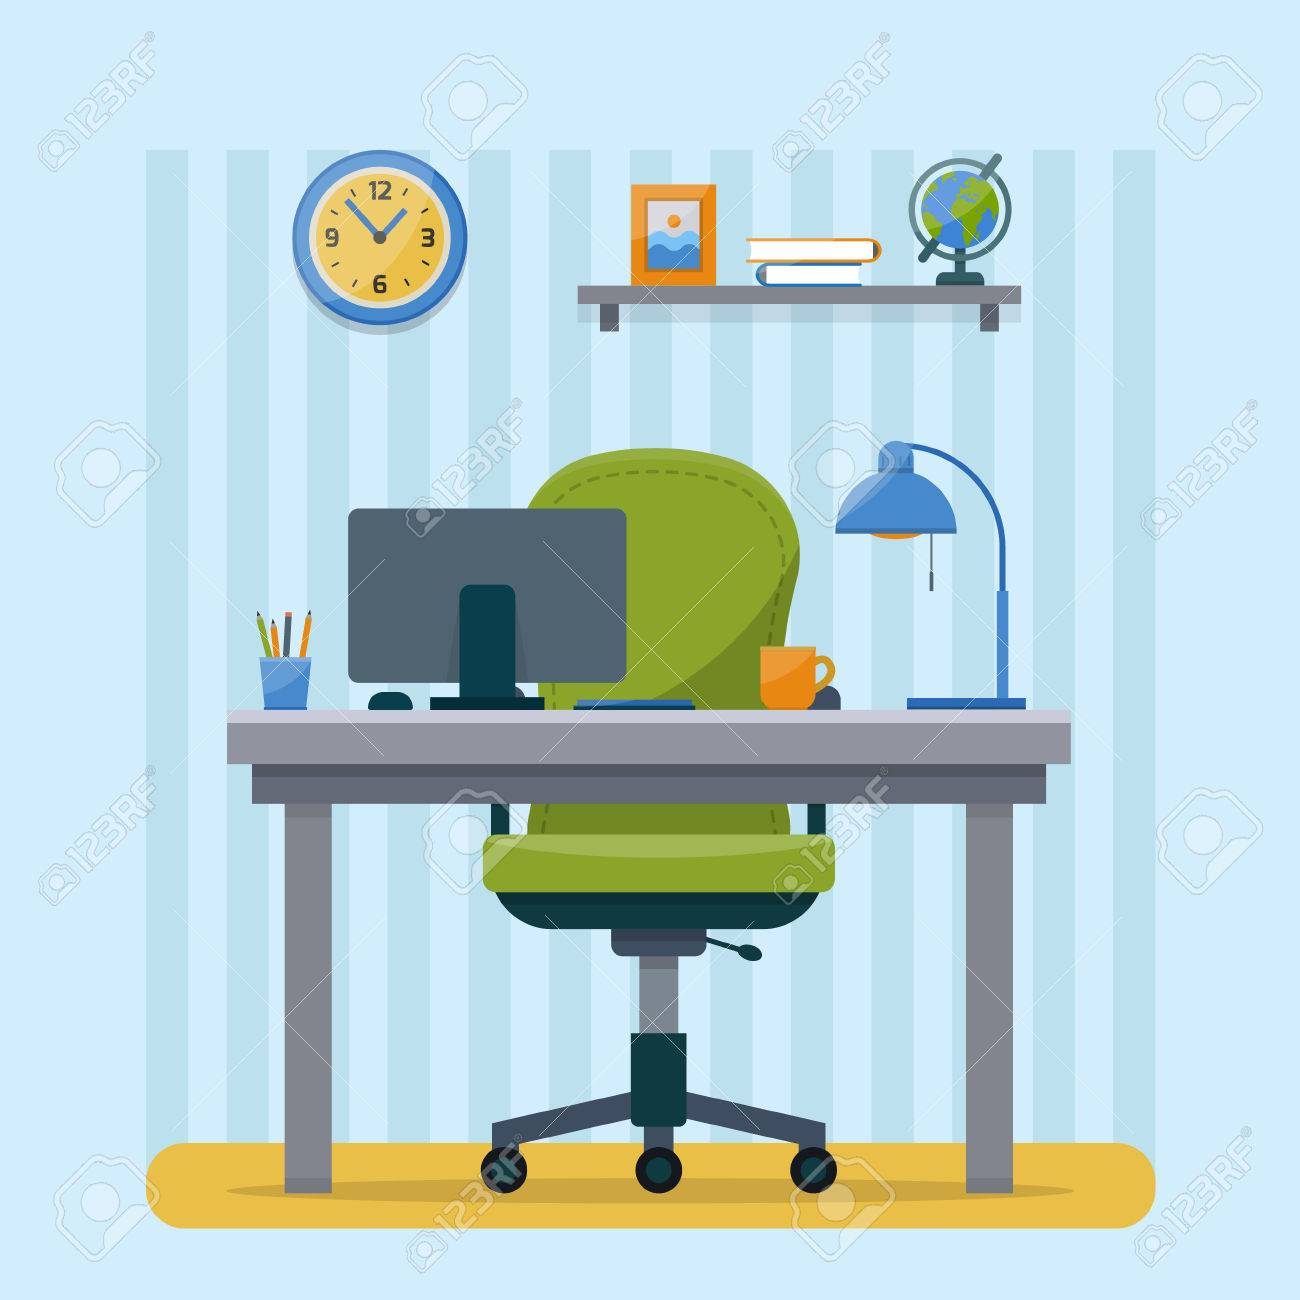 Workplace in office. Cabinet with workspace with table and computer. Flat style vector illustration with texture. - 52617220